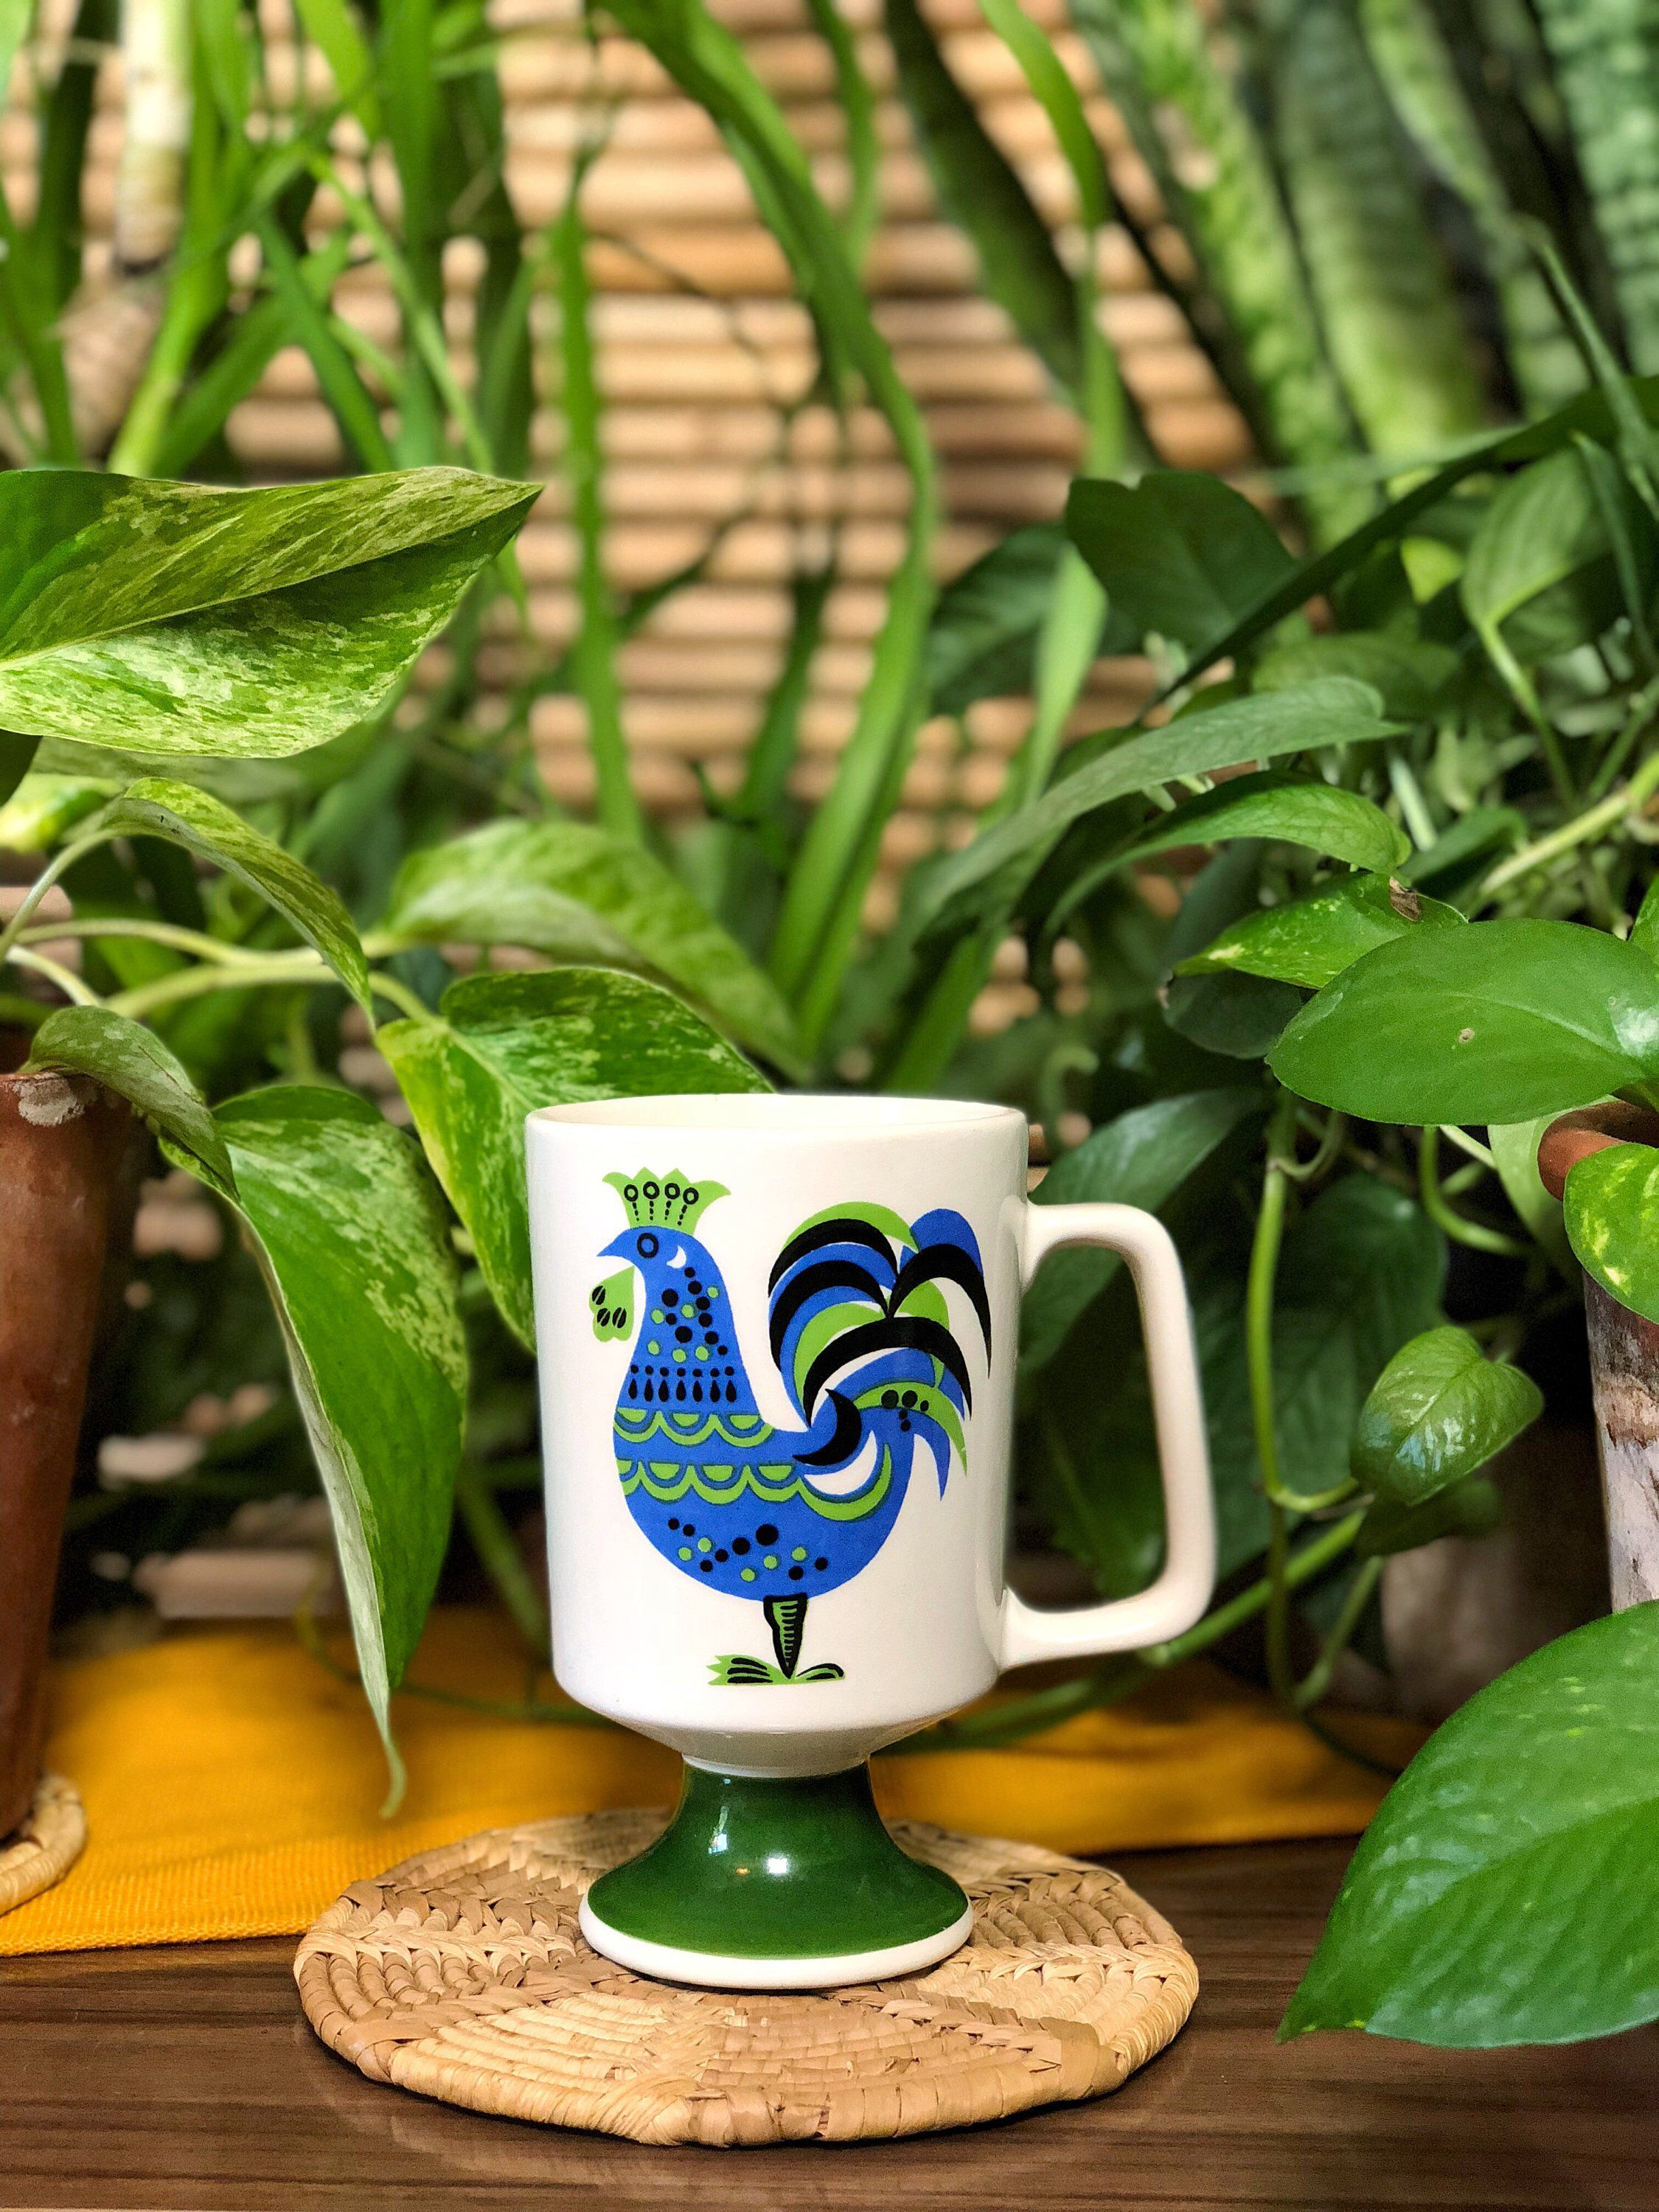 Excited to share this item from my etsy shop coffee mugs